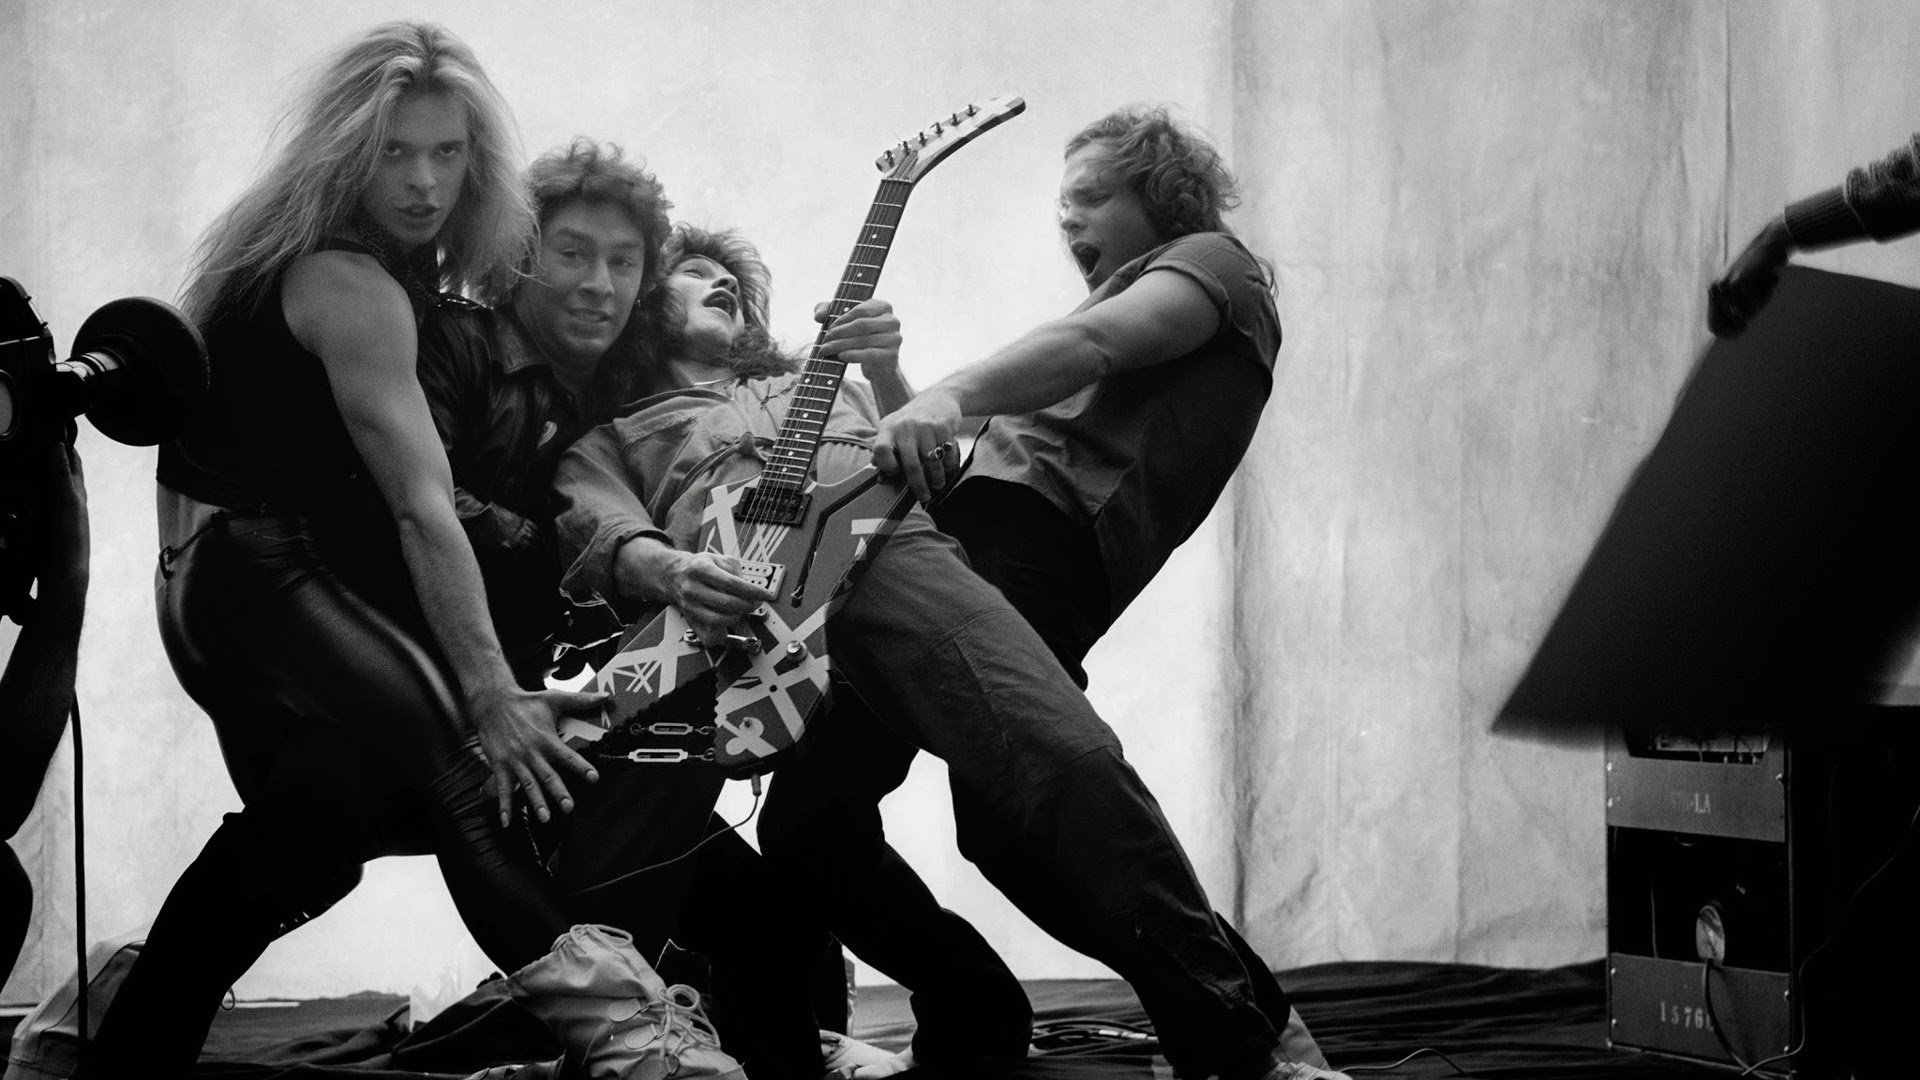 Van halen hd wallpaper background image 1920x1080 id - Van halen hd wallpaper ...